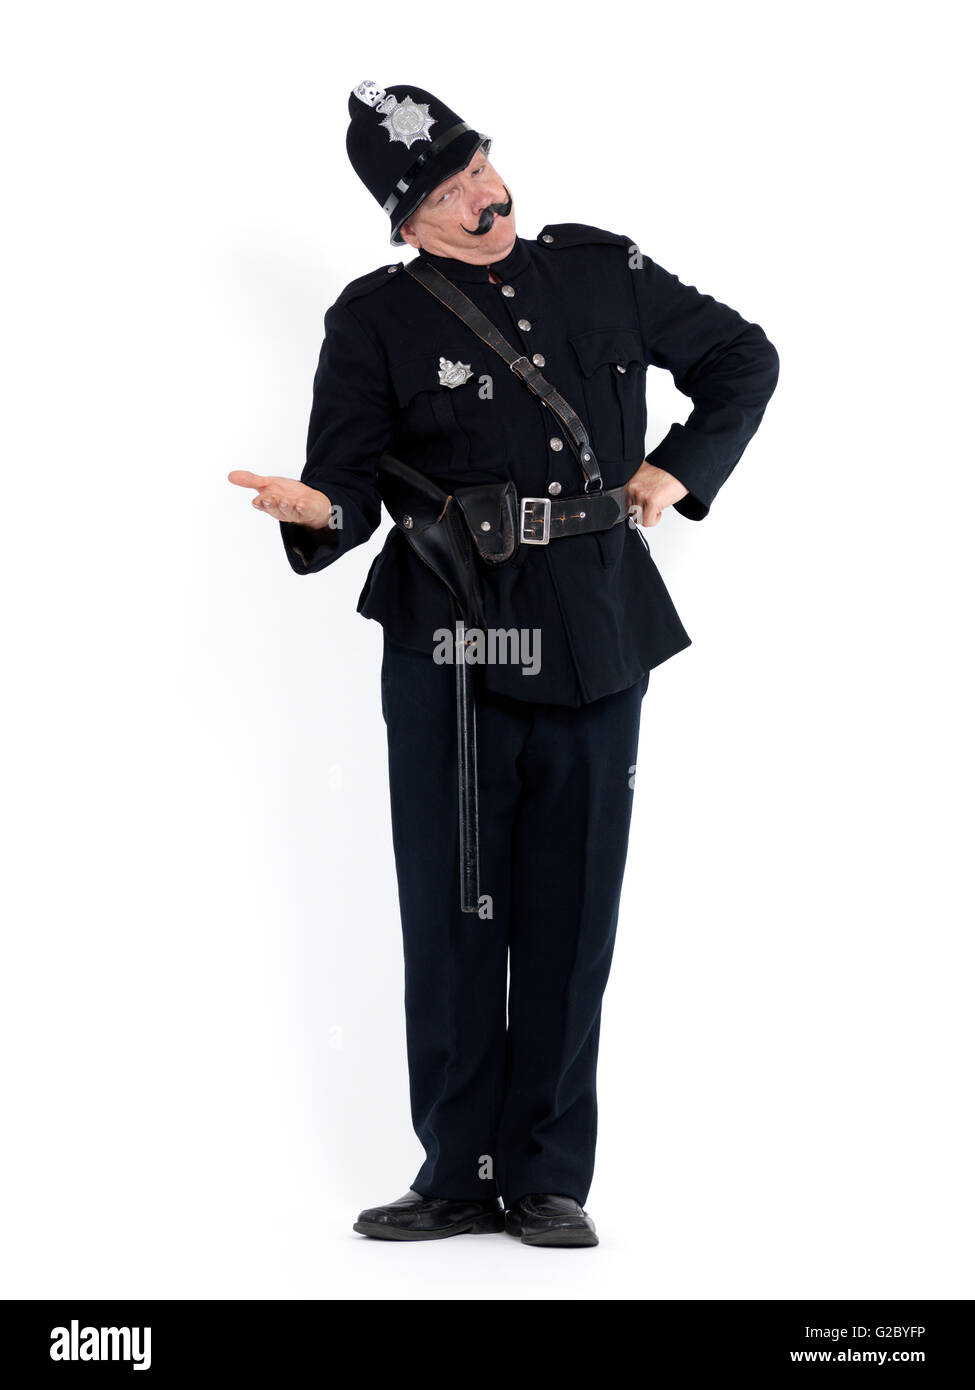 Vintage policeman demanding something - Stock Image